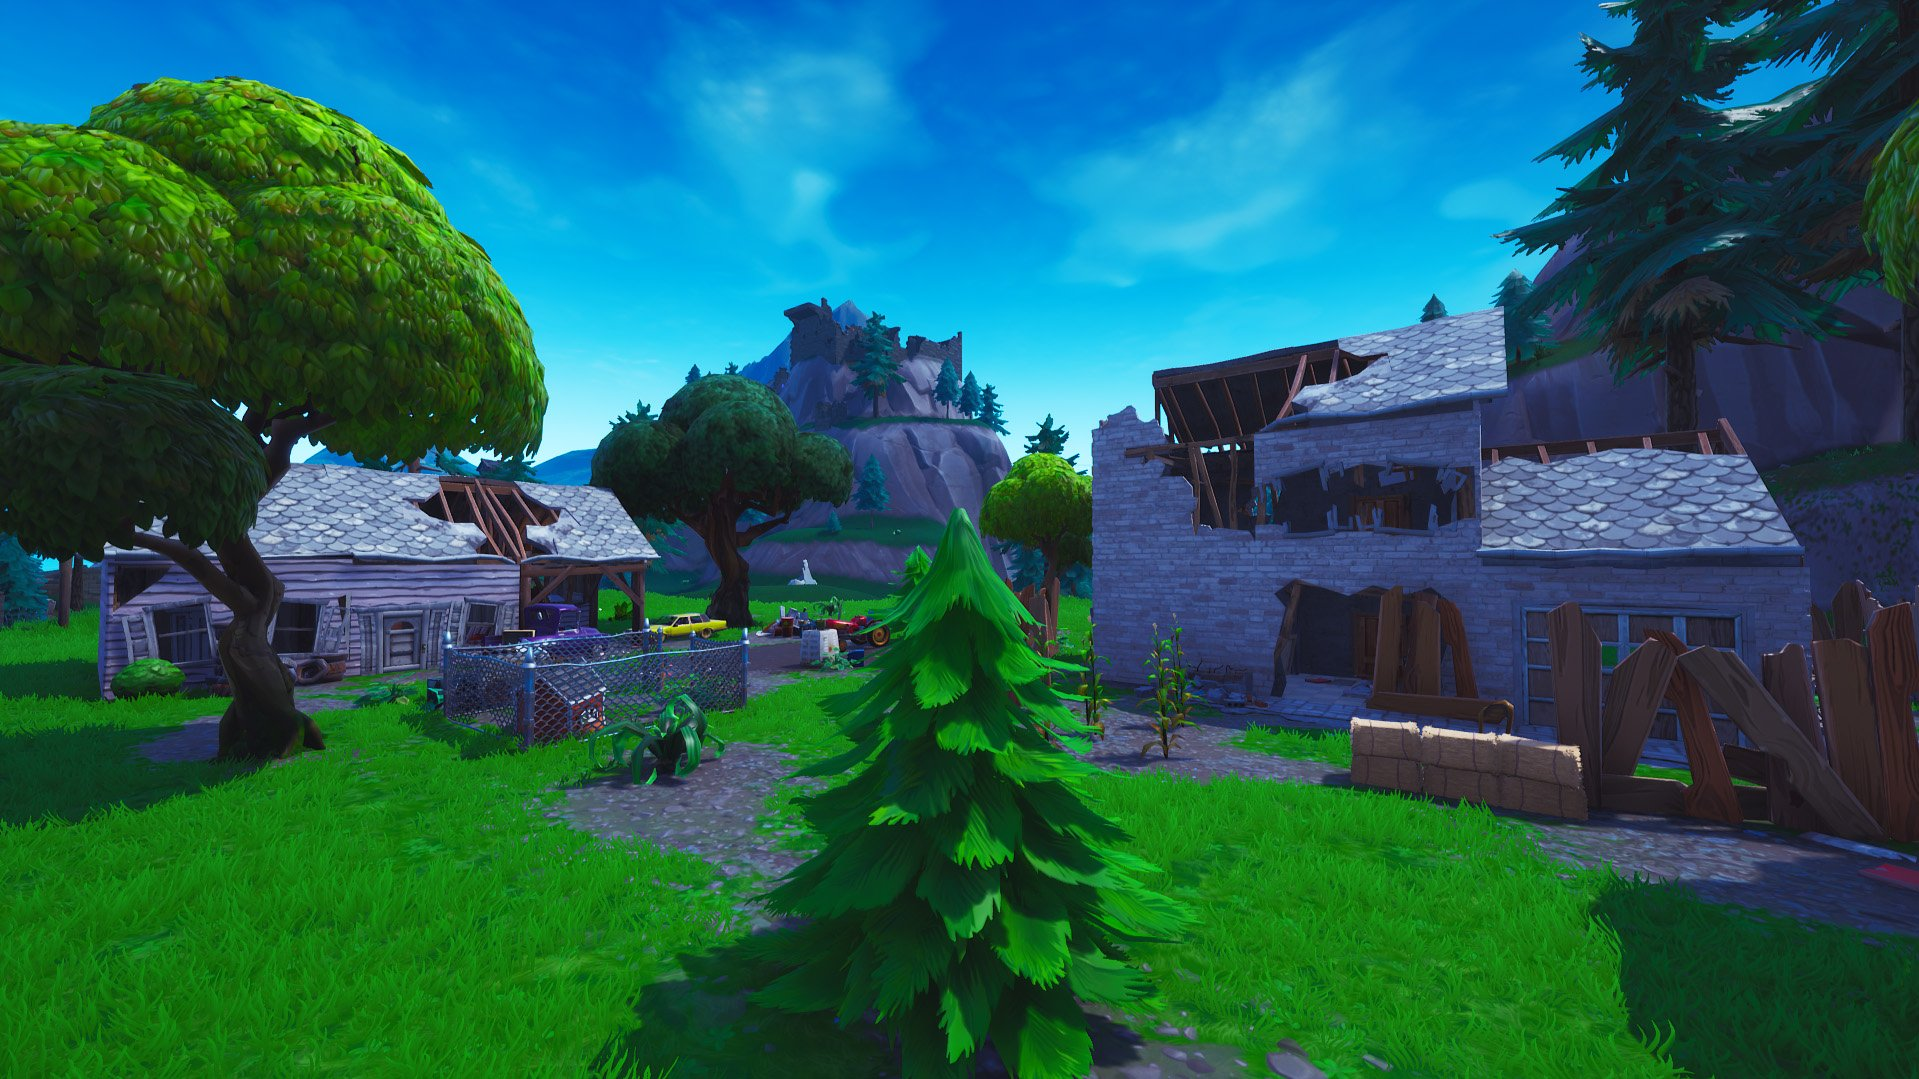 Fortnite houses redesigned near haunted hills